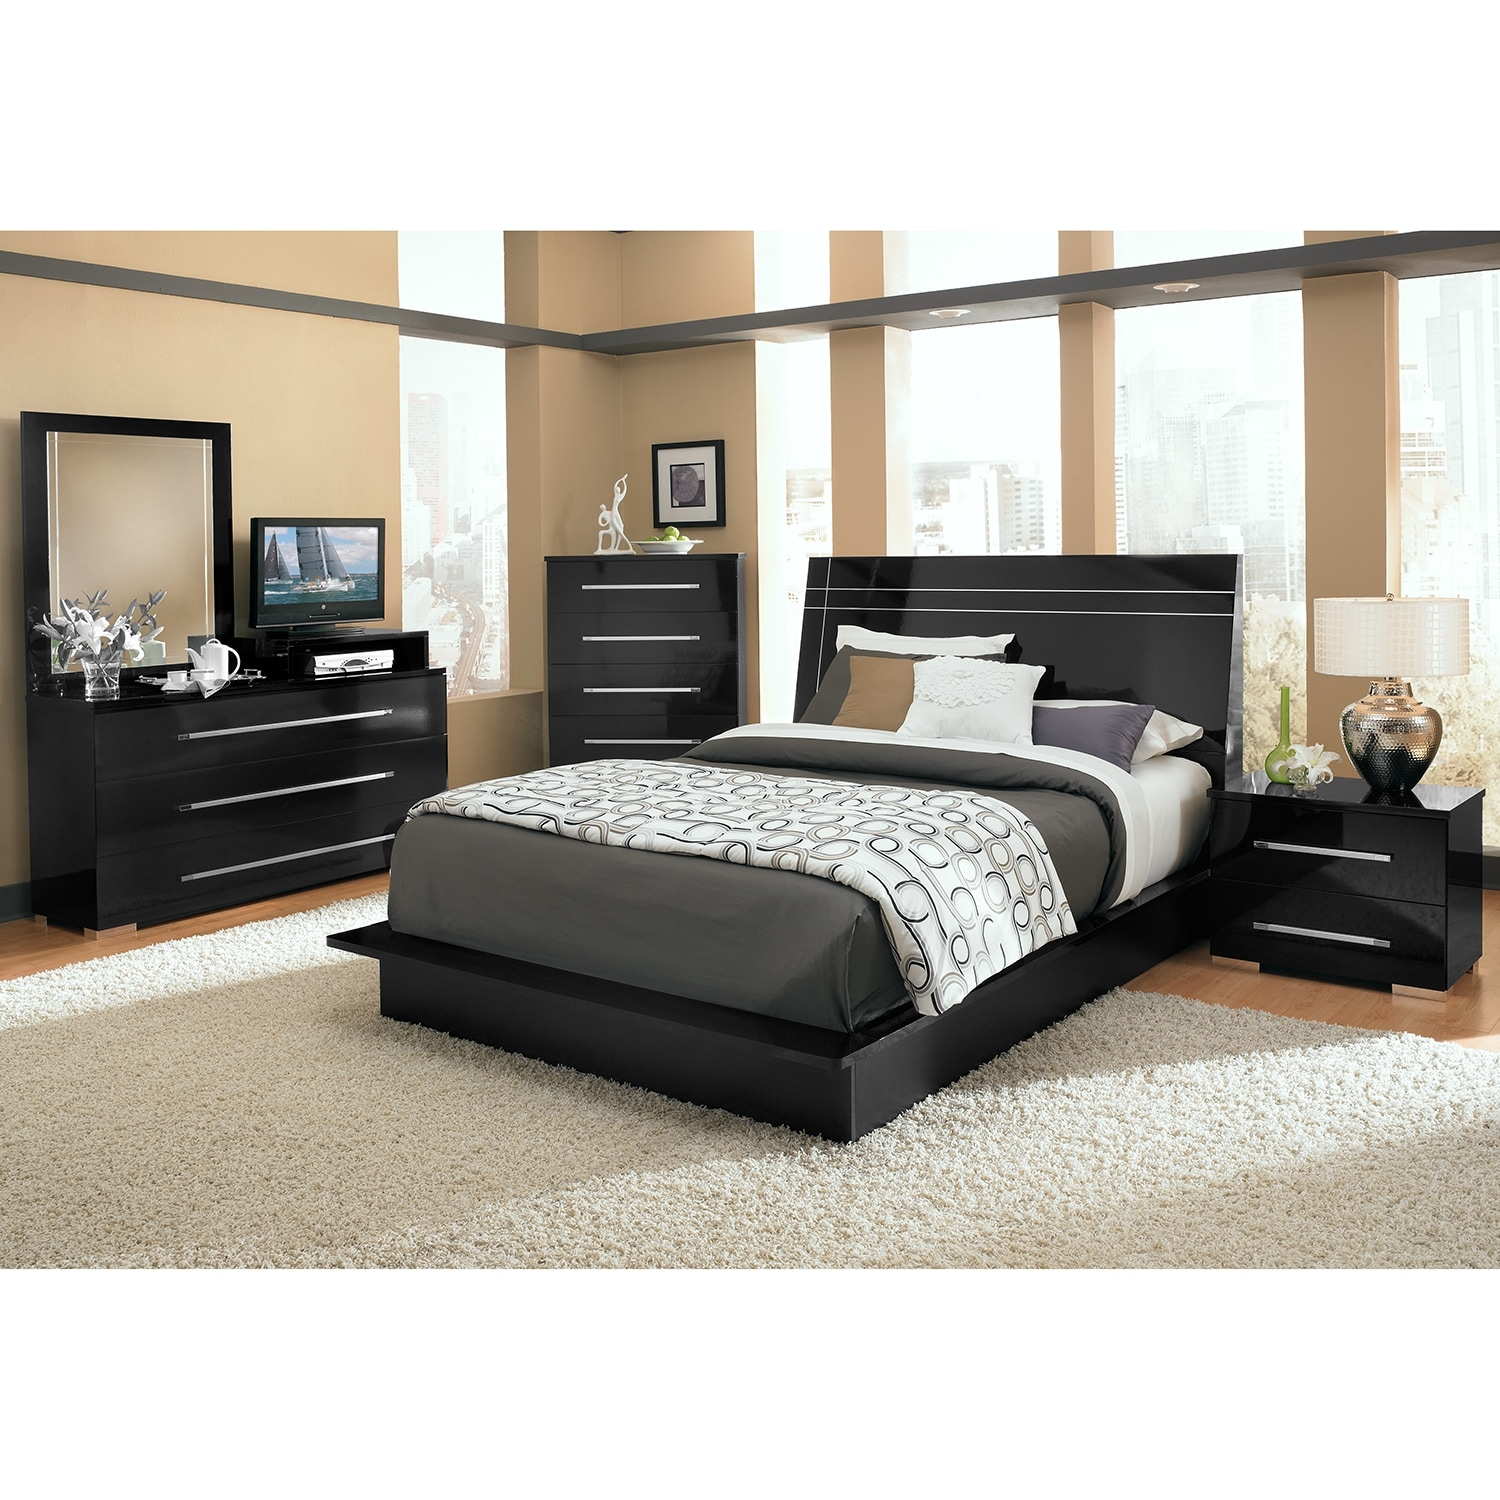 Dimora Black Ii King Bed Value City Furniture